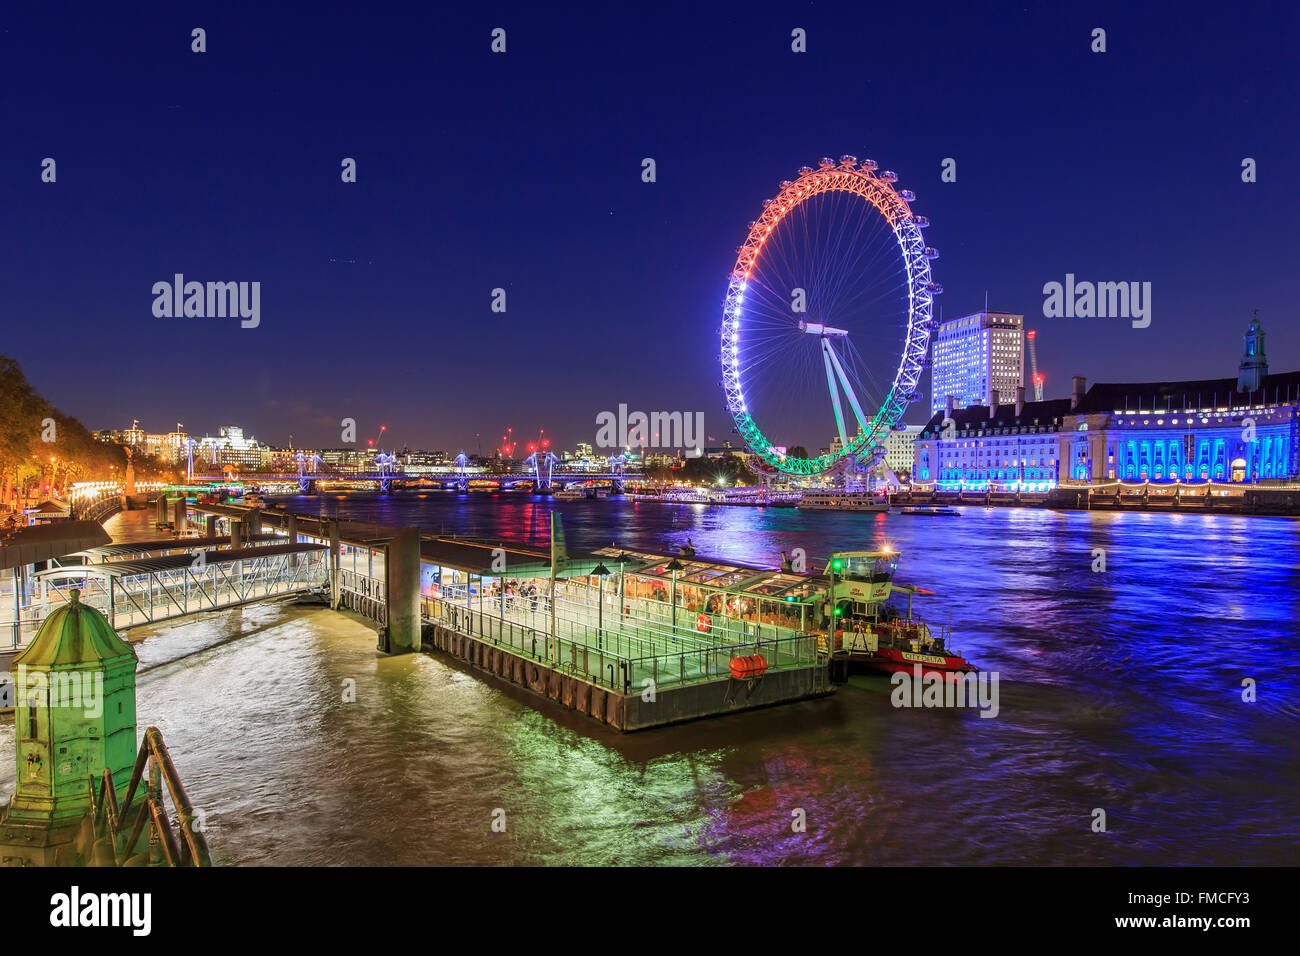 Traveling in the famous London Eye, London, United Kingdom around twilight - Stock Image